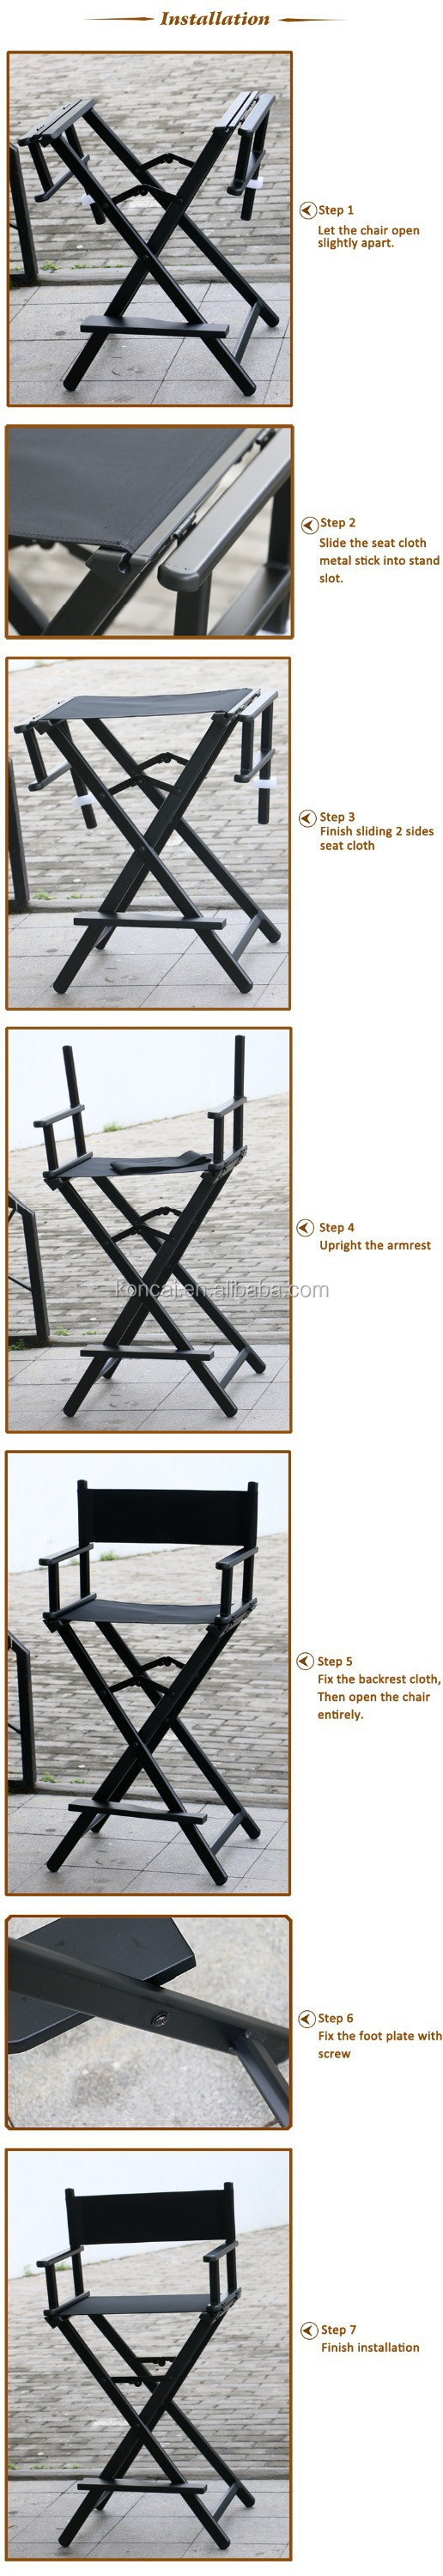 Portable salon hair dressing aluminium makeup chair Aluminum makeup artist chair